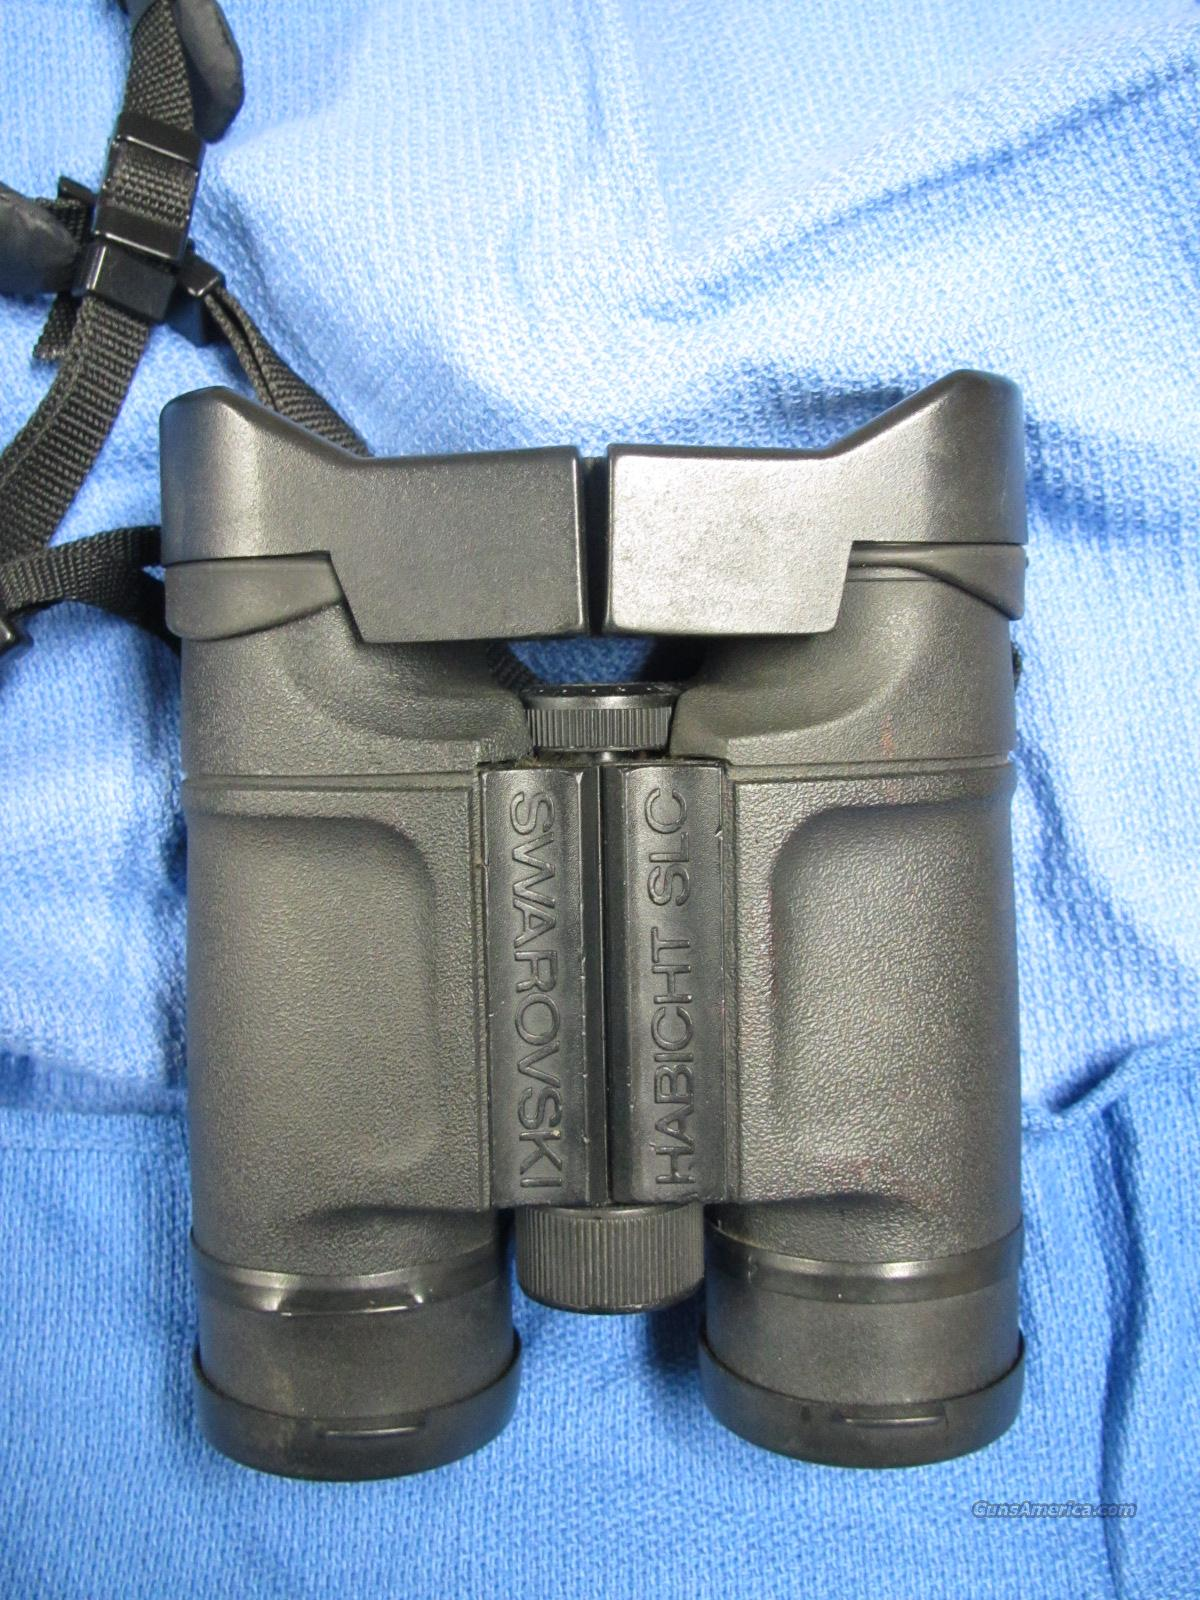 Swarovski SLC 8X30 Binoculars  Non-Guns > Scopes/Mounts/Rings & Optics > Non-Scope Optics > Binoculars